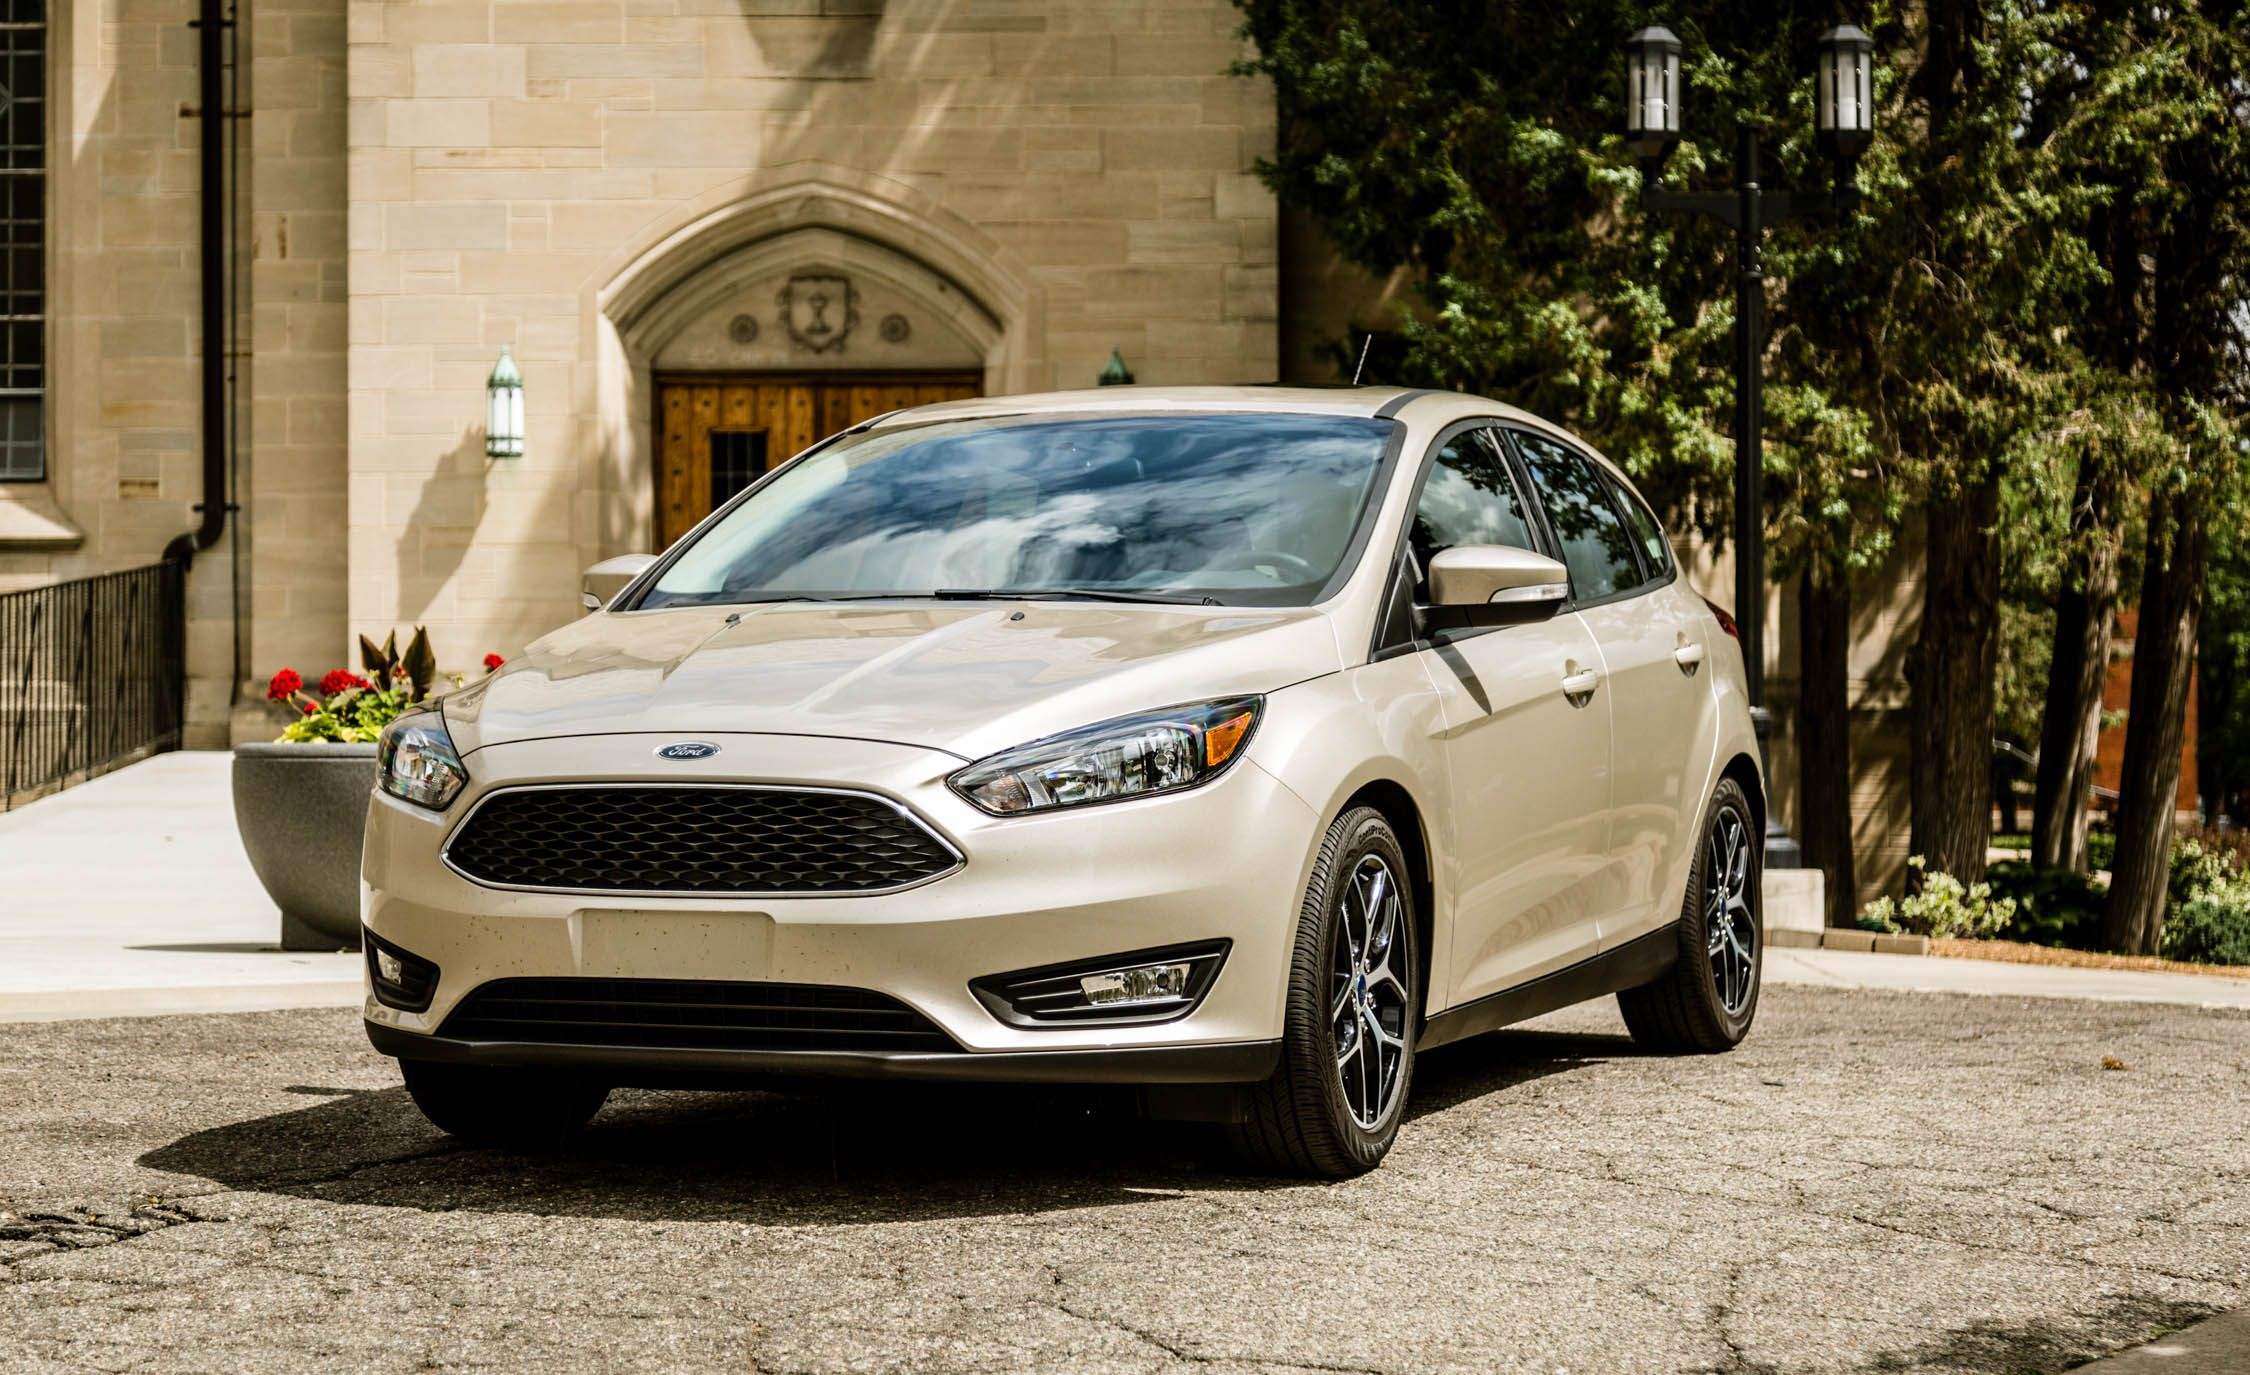 2016 Ford Focus 20l Automatic Hatchback Review Car And Driver 2014 Transmission Slipping